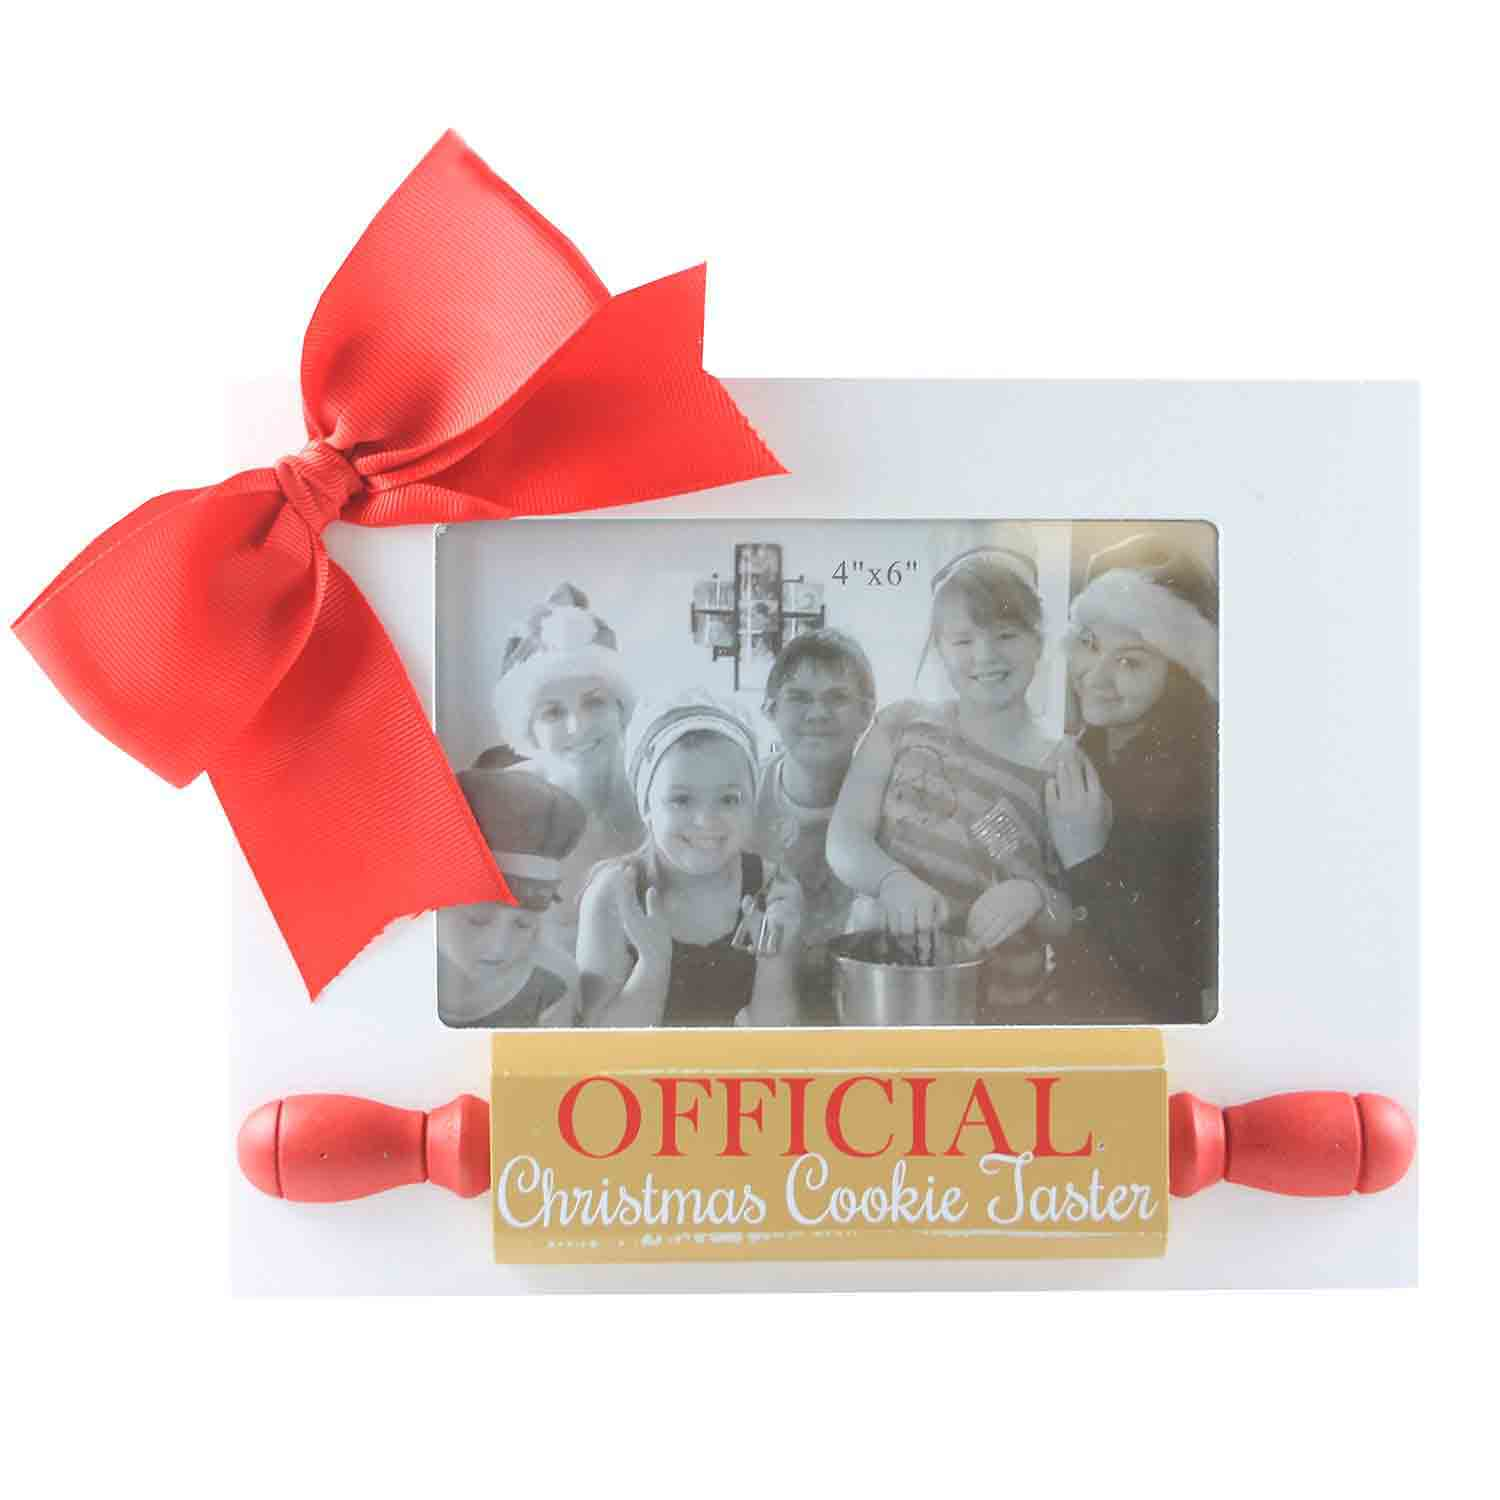 Christmas Cookie Taster Photo Frame